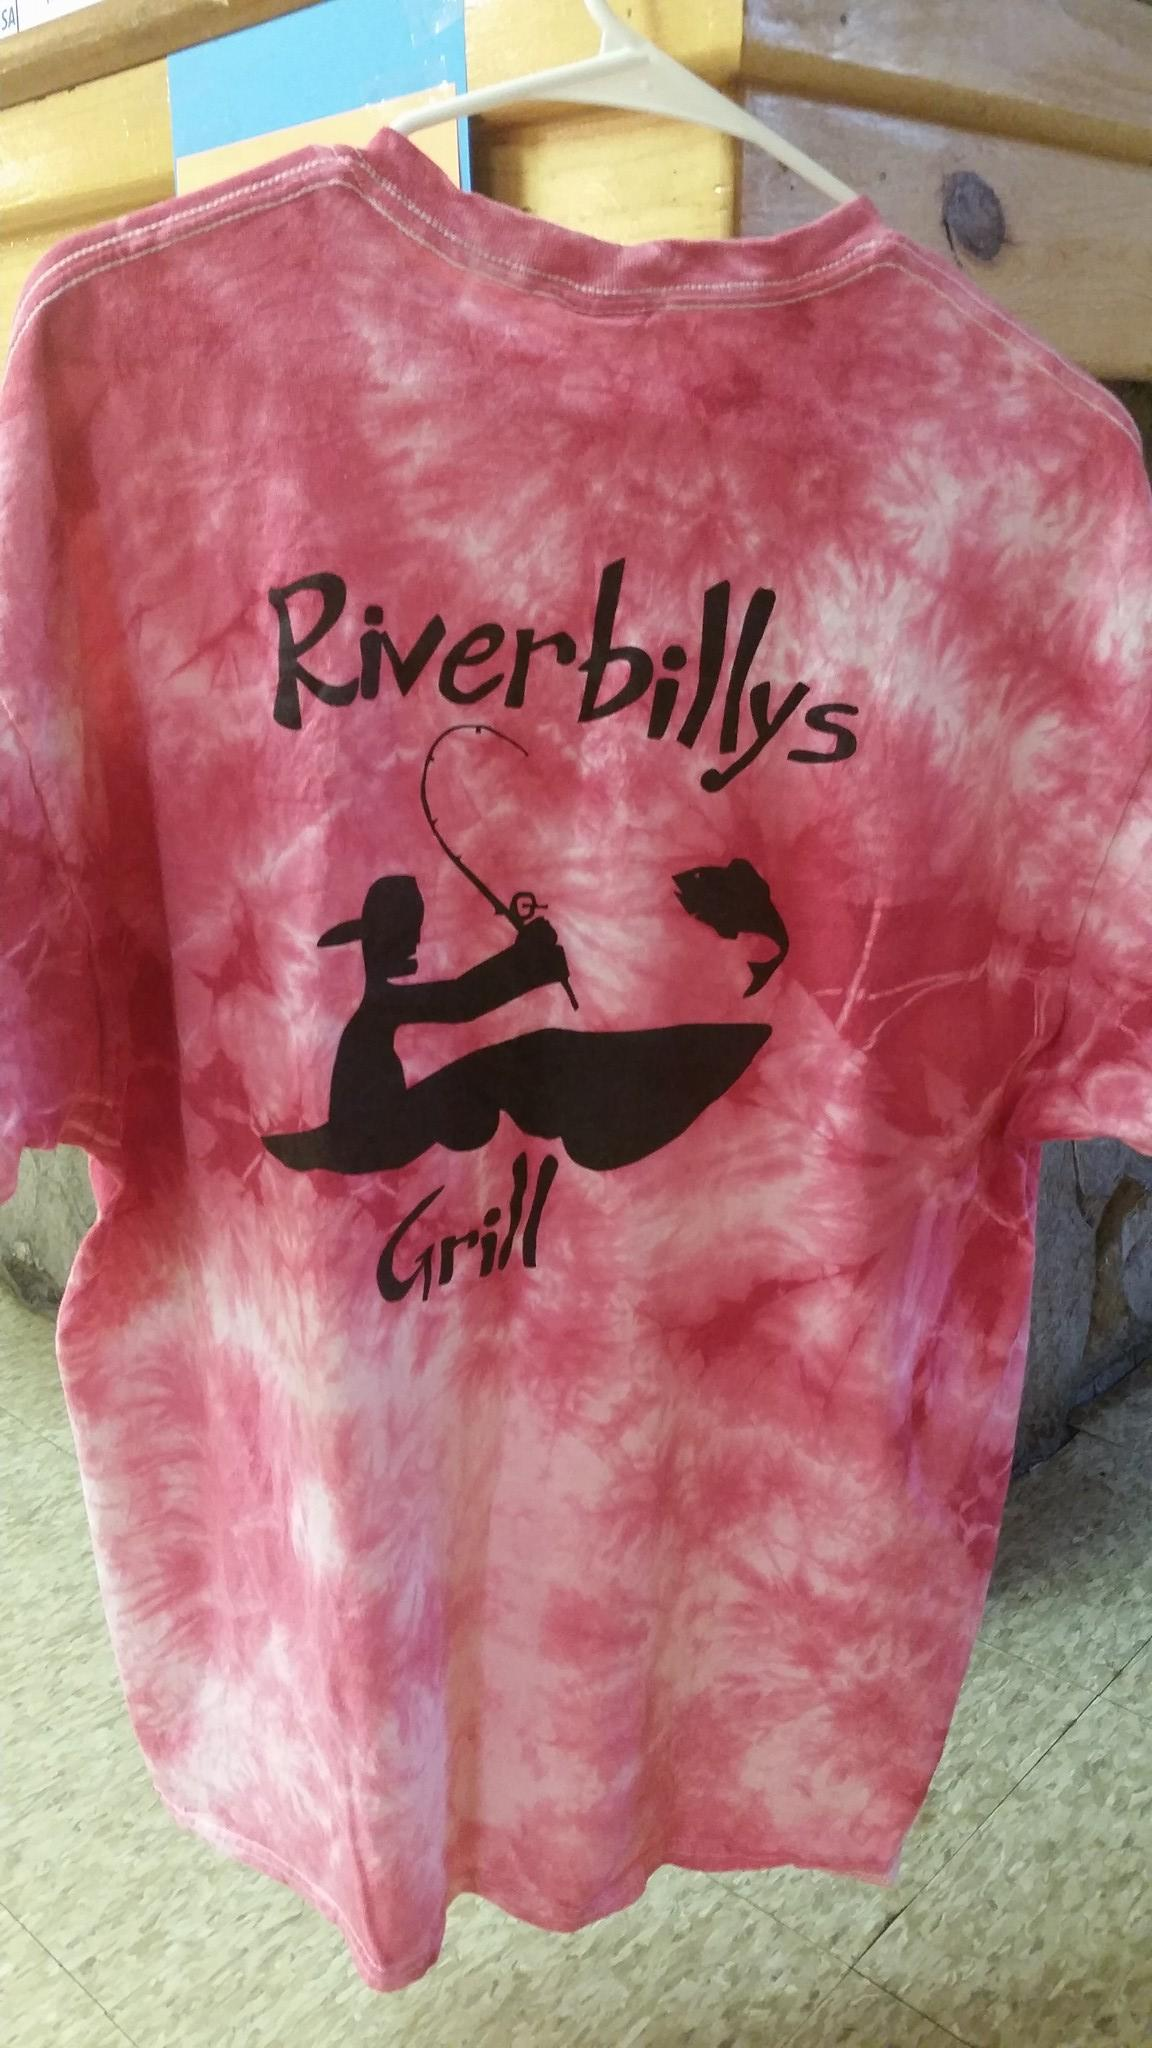 Riverbilly's Grill image 5